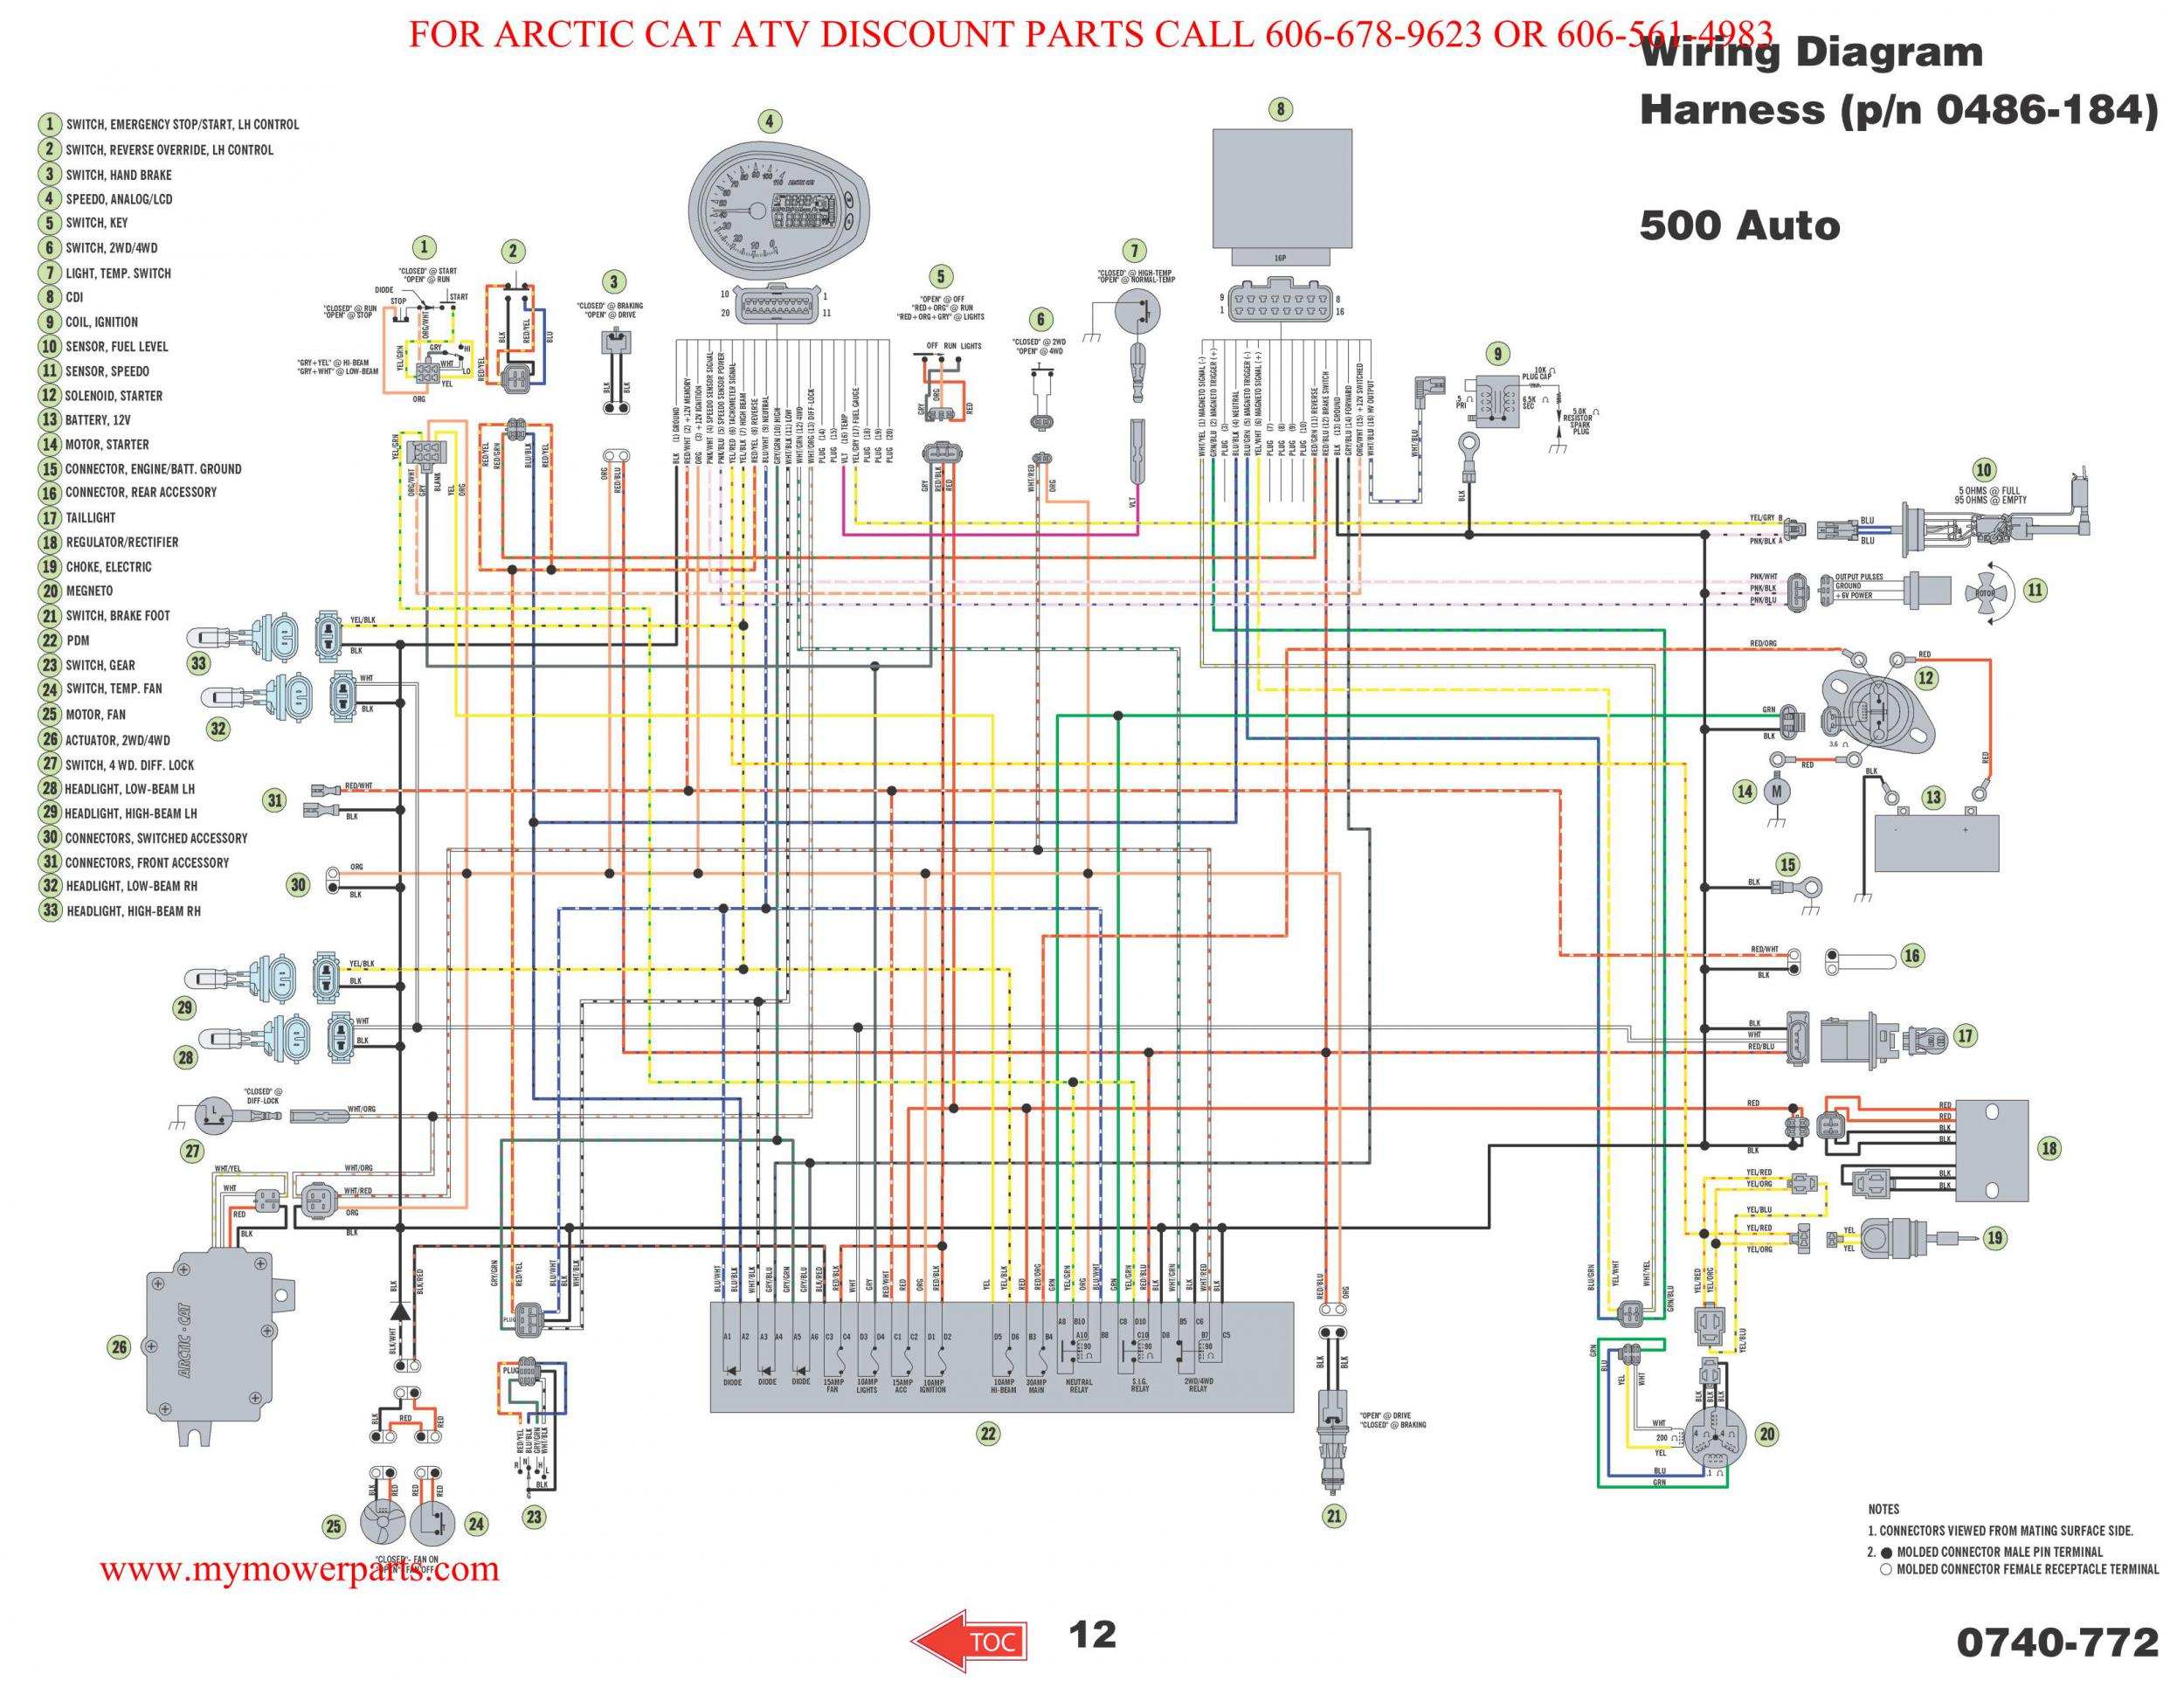 Polaris 400 Wiring Diagram | Wiring Diagram on polaris ignition wiring diagram, polaris atv carburetor adjustment, polaris ev will not charge, polaris scrambler 400 wiring diagram, polaris explorer 400 wiring diagram, polaris solenoid wiring diagram, polaris engine diagram, polaris indy 400 wiring diagram, polaris carburetor diagram, polaris 90 wiring diagram, polaris 600 wiring diagram, polaris choke cable parts, polaris parts diagram, polaris 700 atv battery, polaris atv diagrams, polaris ranger 700 wiring diagram, polaris ranger 400 accessories, polaris phoenix 200 wiring diagram, polaris indy 600 voltage regulator placement, polaris snowmobile wiring diagrams,